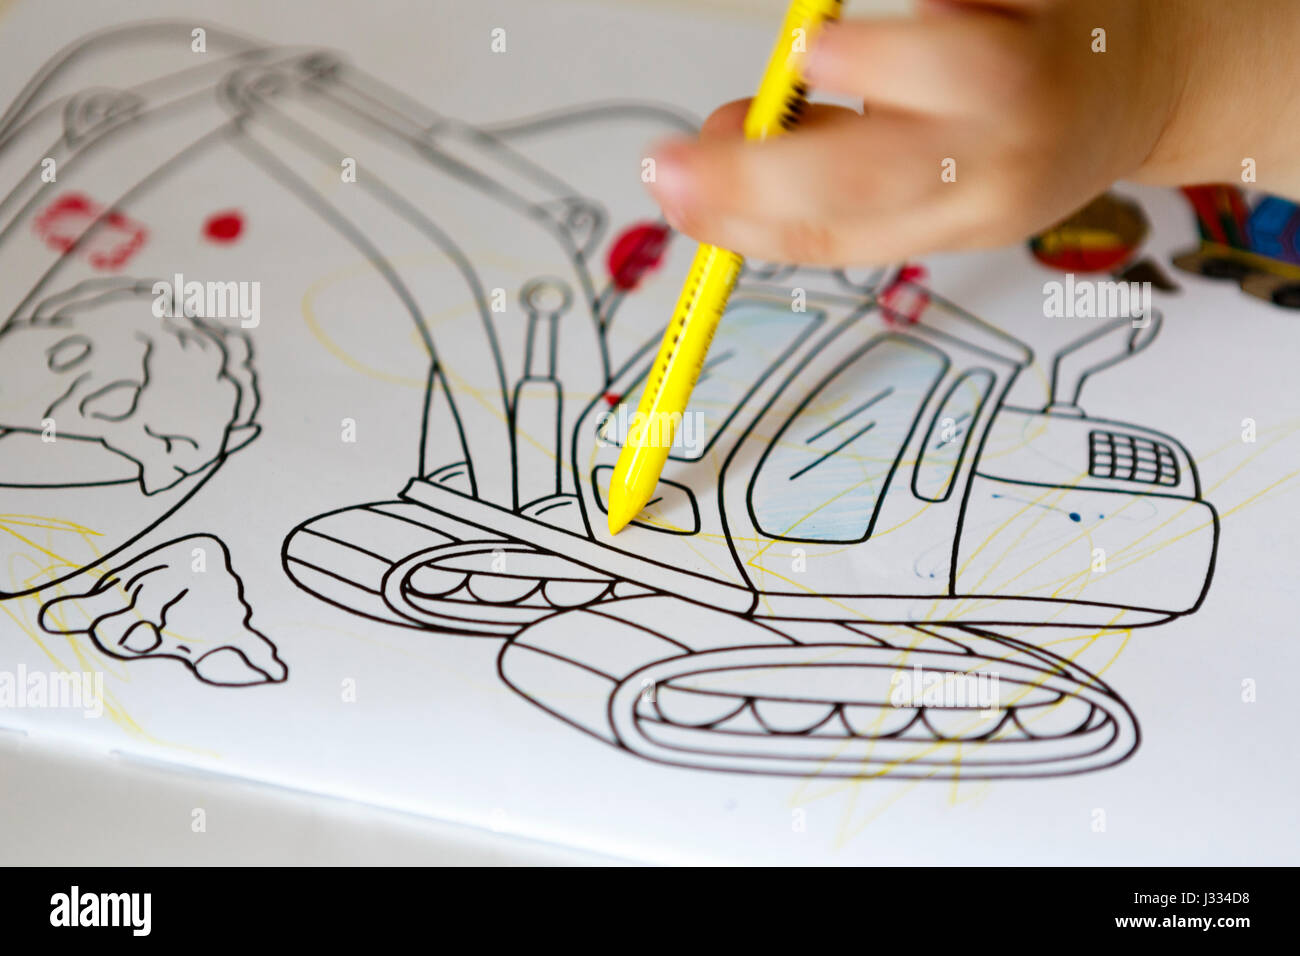 Young Child Draw Coloring Book Stockfotos & Young Child Draw ...